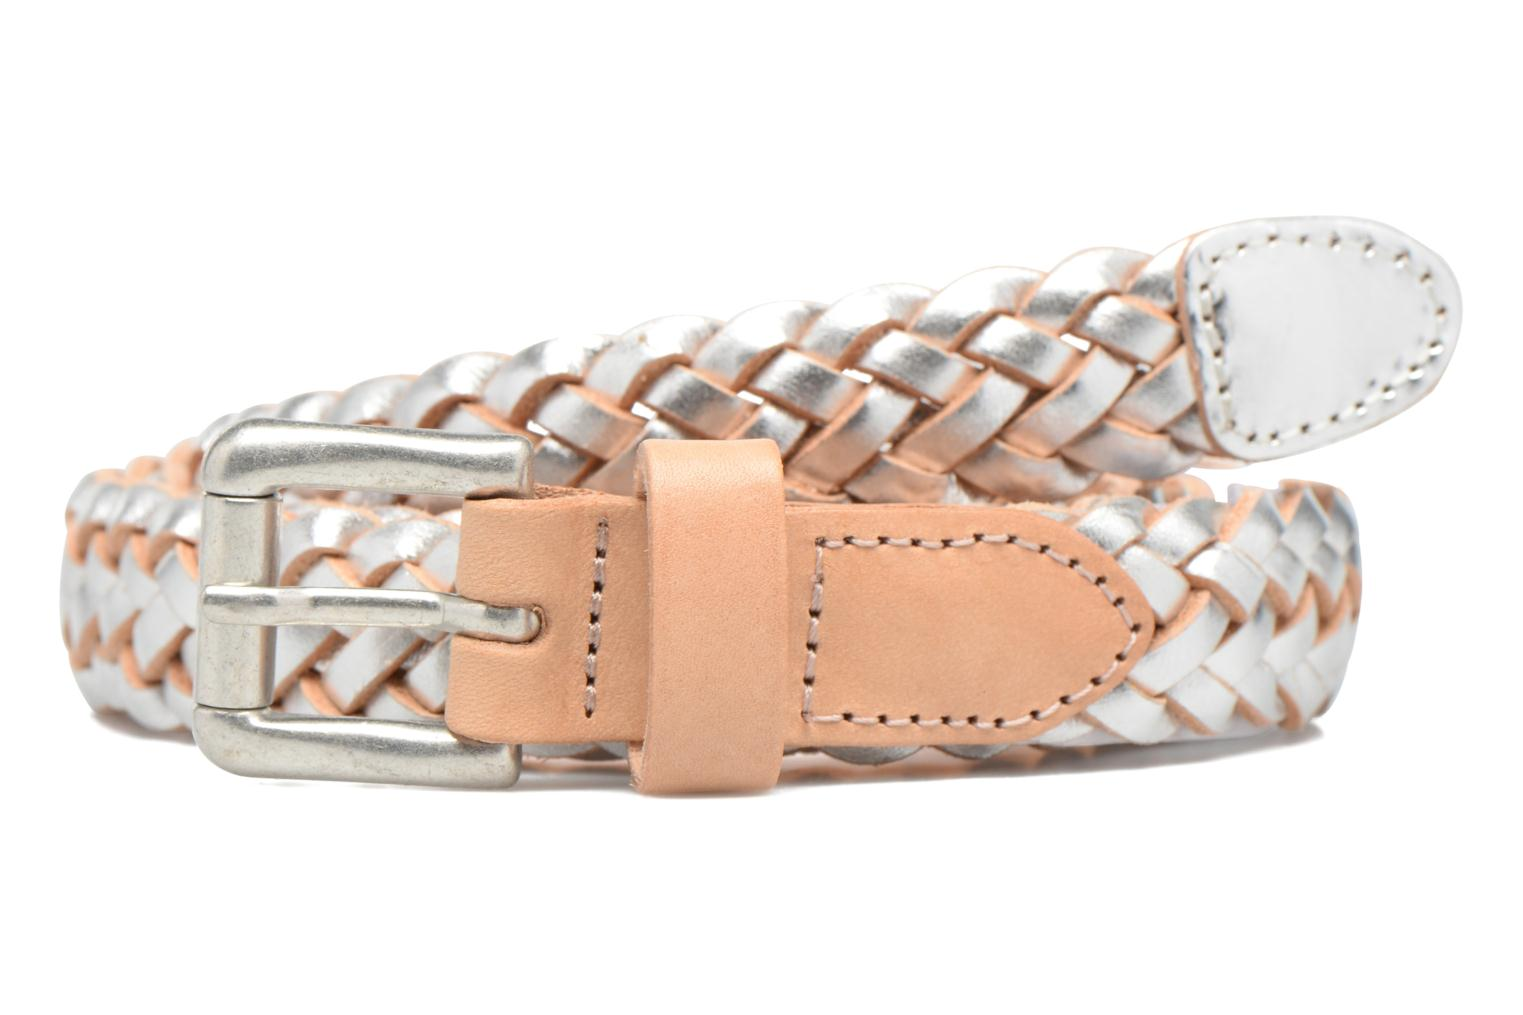 Lille Braided Leather Jeans Belt Silver